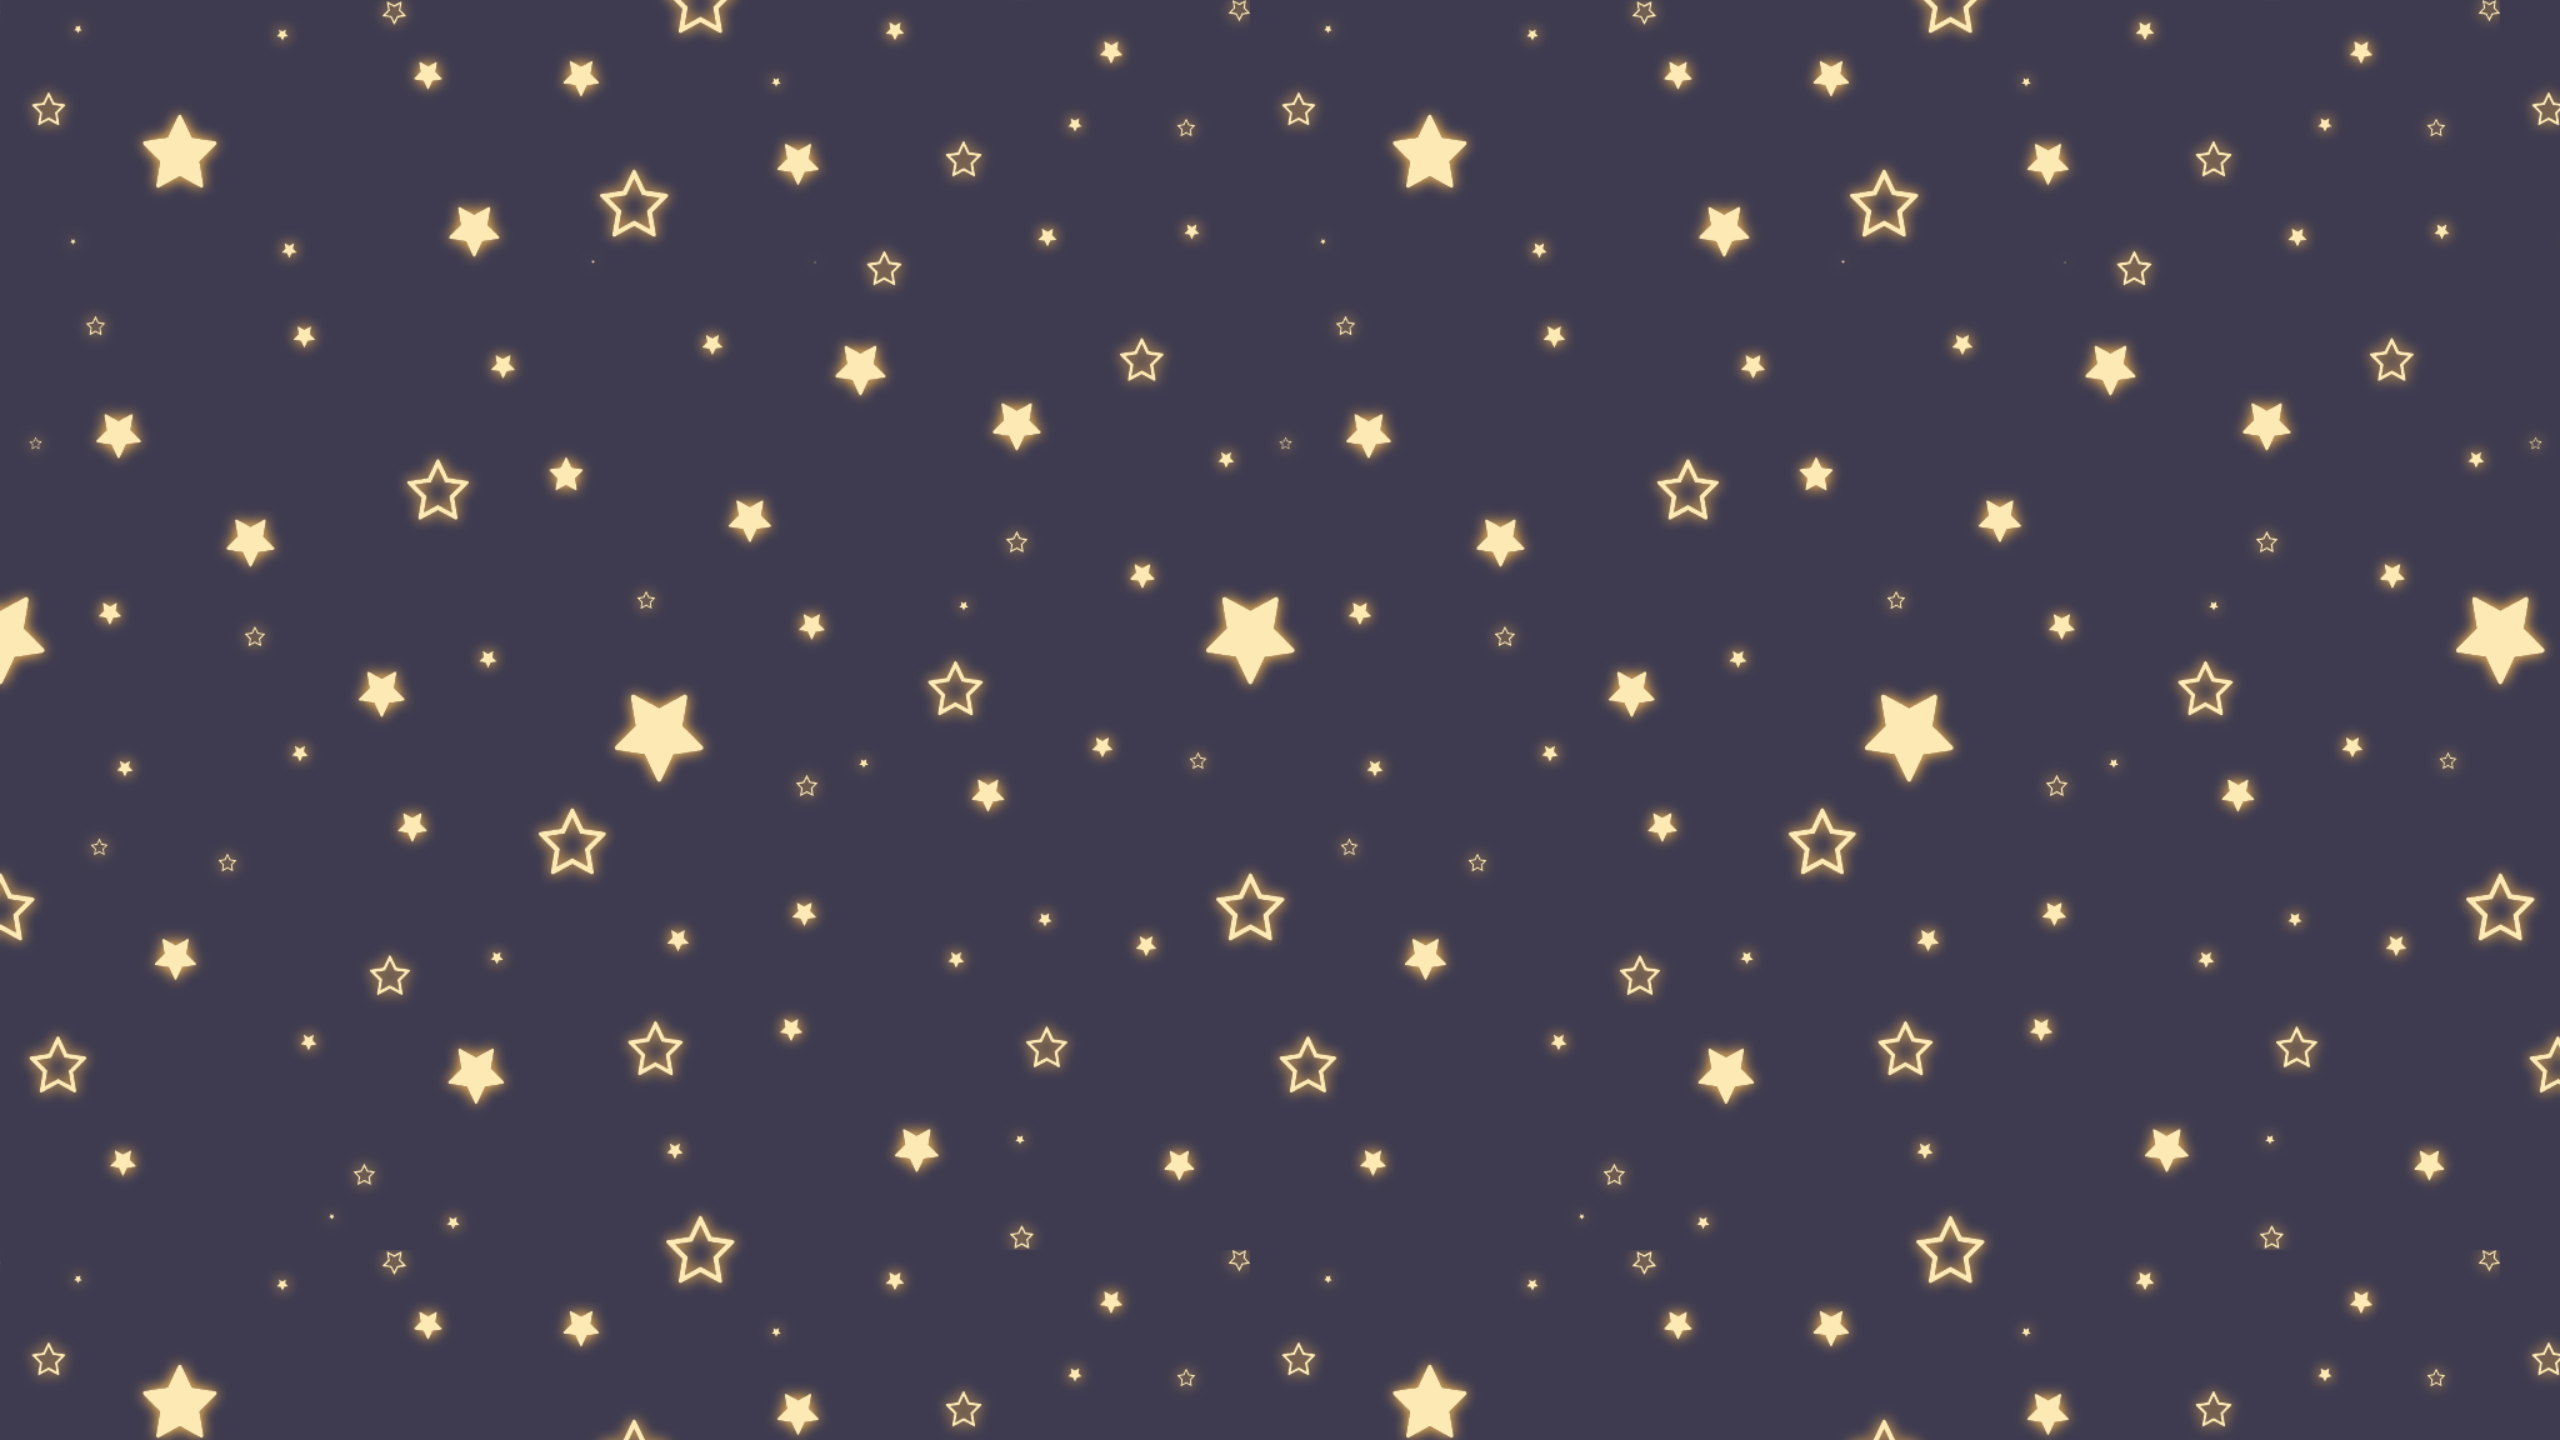 Design A Glowing Star Pattern And Turn It Into A Background.